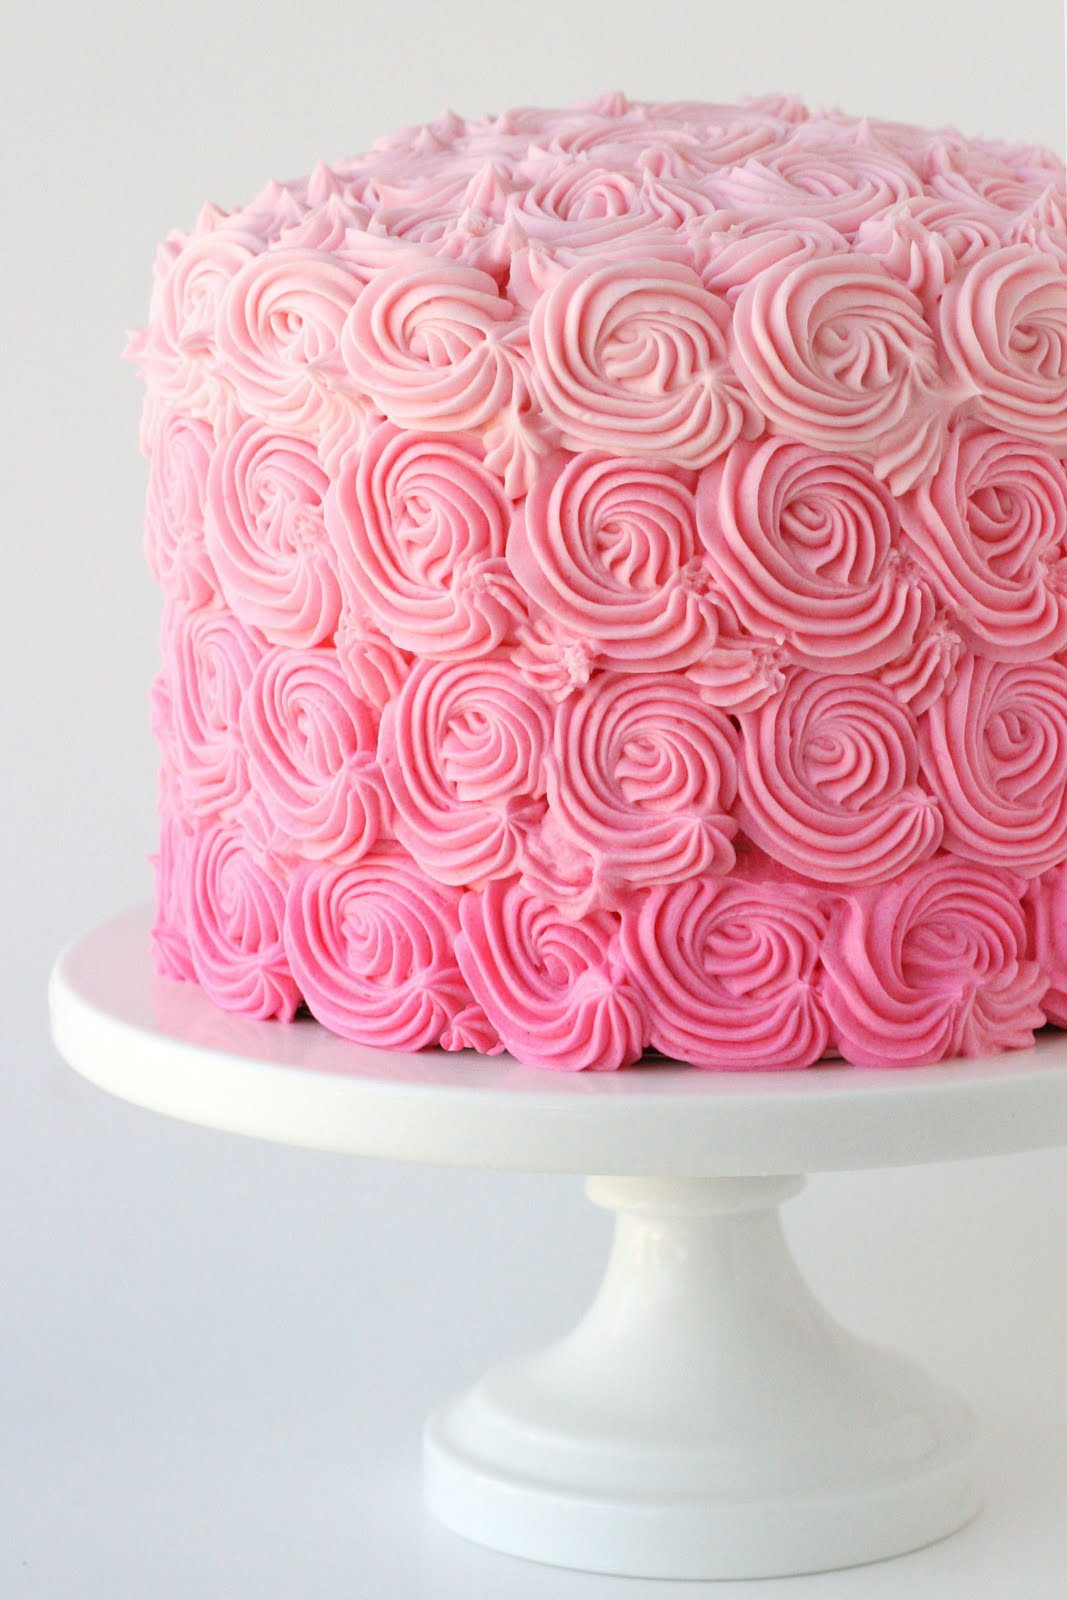 Best ideas about Pink Birthday Cake . Save or Pin Pink Ombre Swirl Cake – Glorious Treats Now.